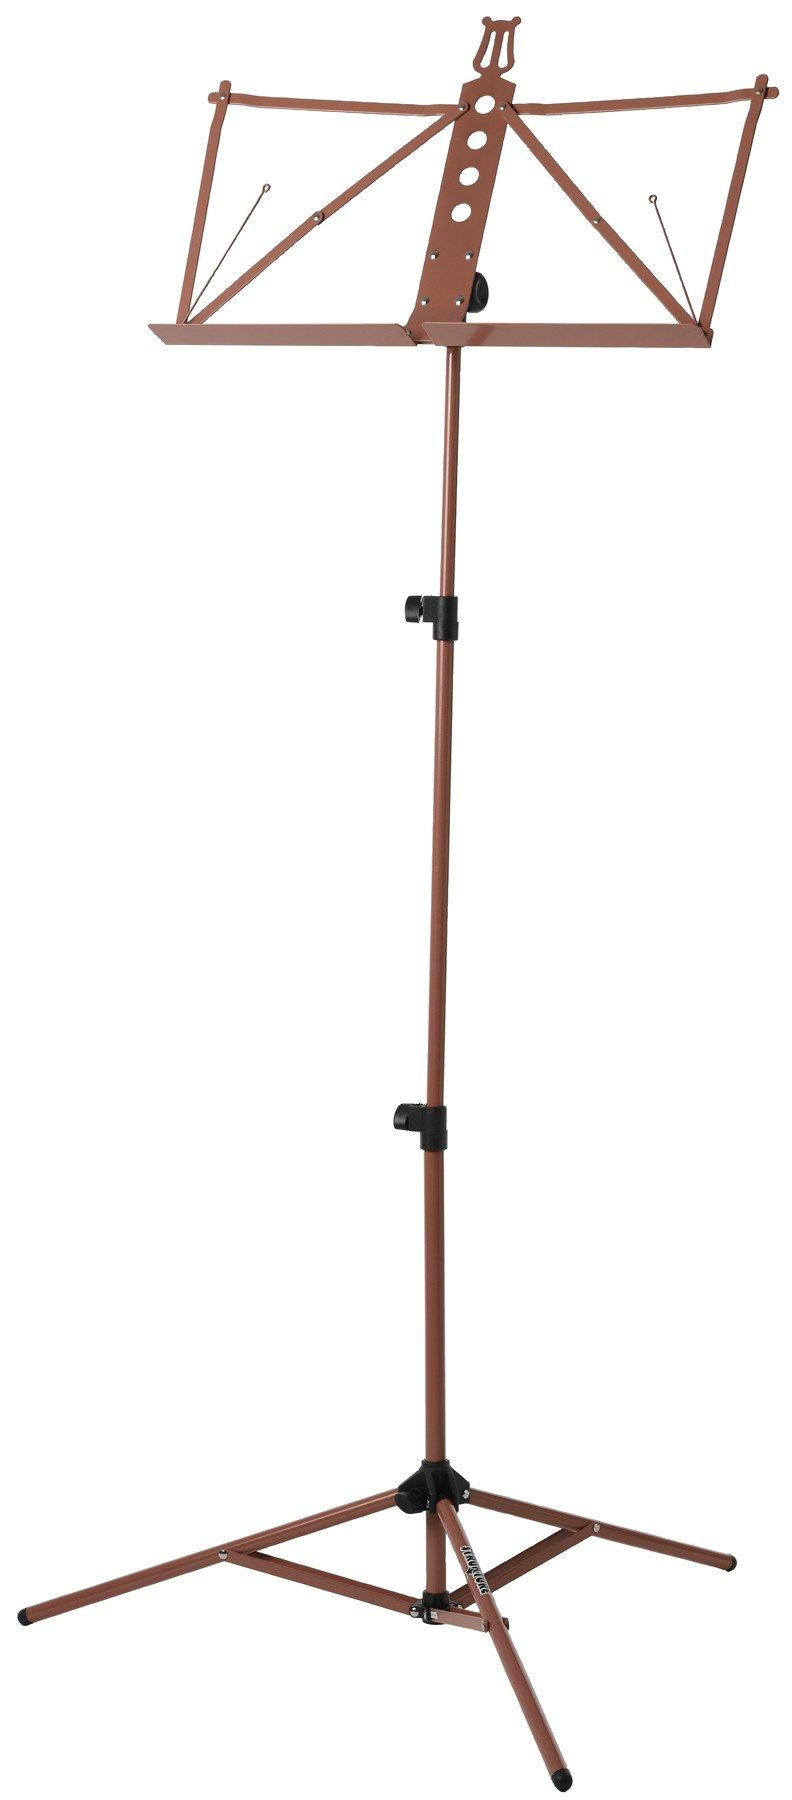 Deluxe Aluminum Music Stand w/Adjustable Tray - Red